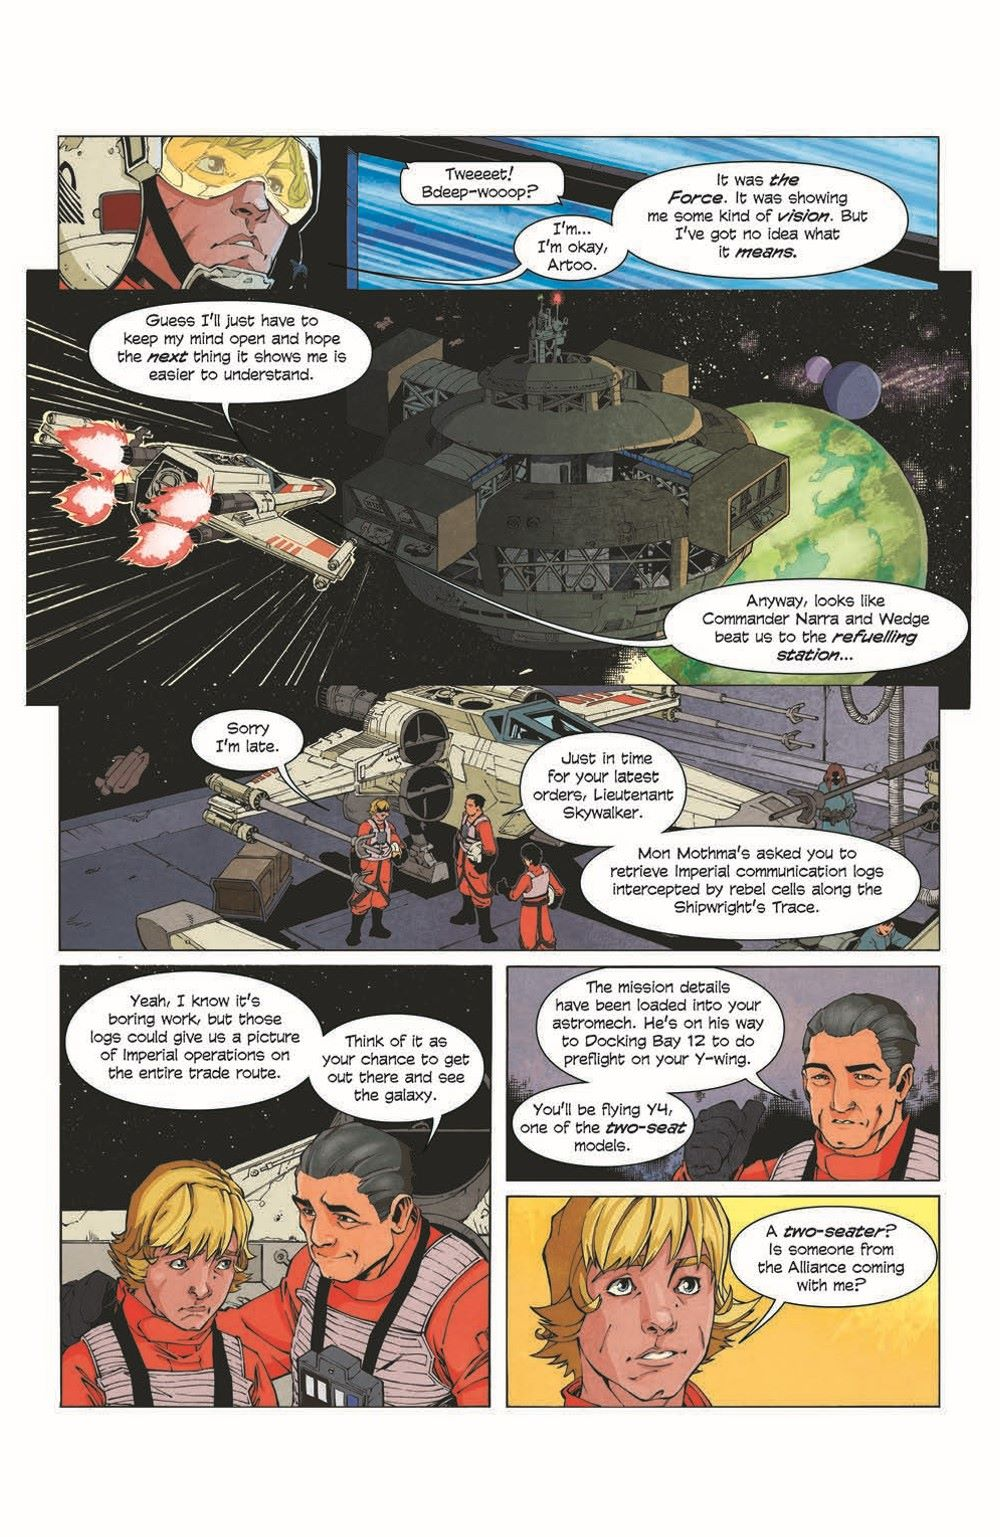 SWA_Weapons01_pr-7 ComicList Previews: STAR WARS ADVENTURES THE WEAPON OF A JEDI #1 (OF 2)